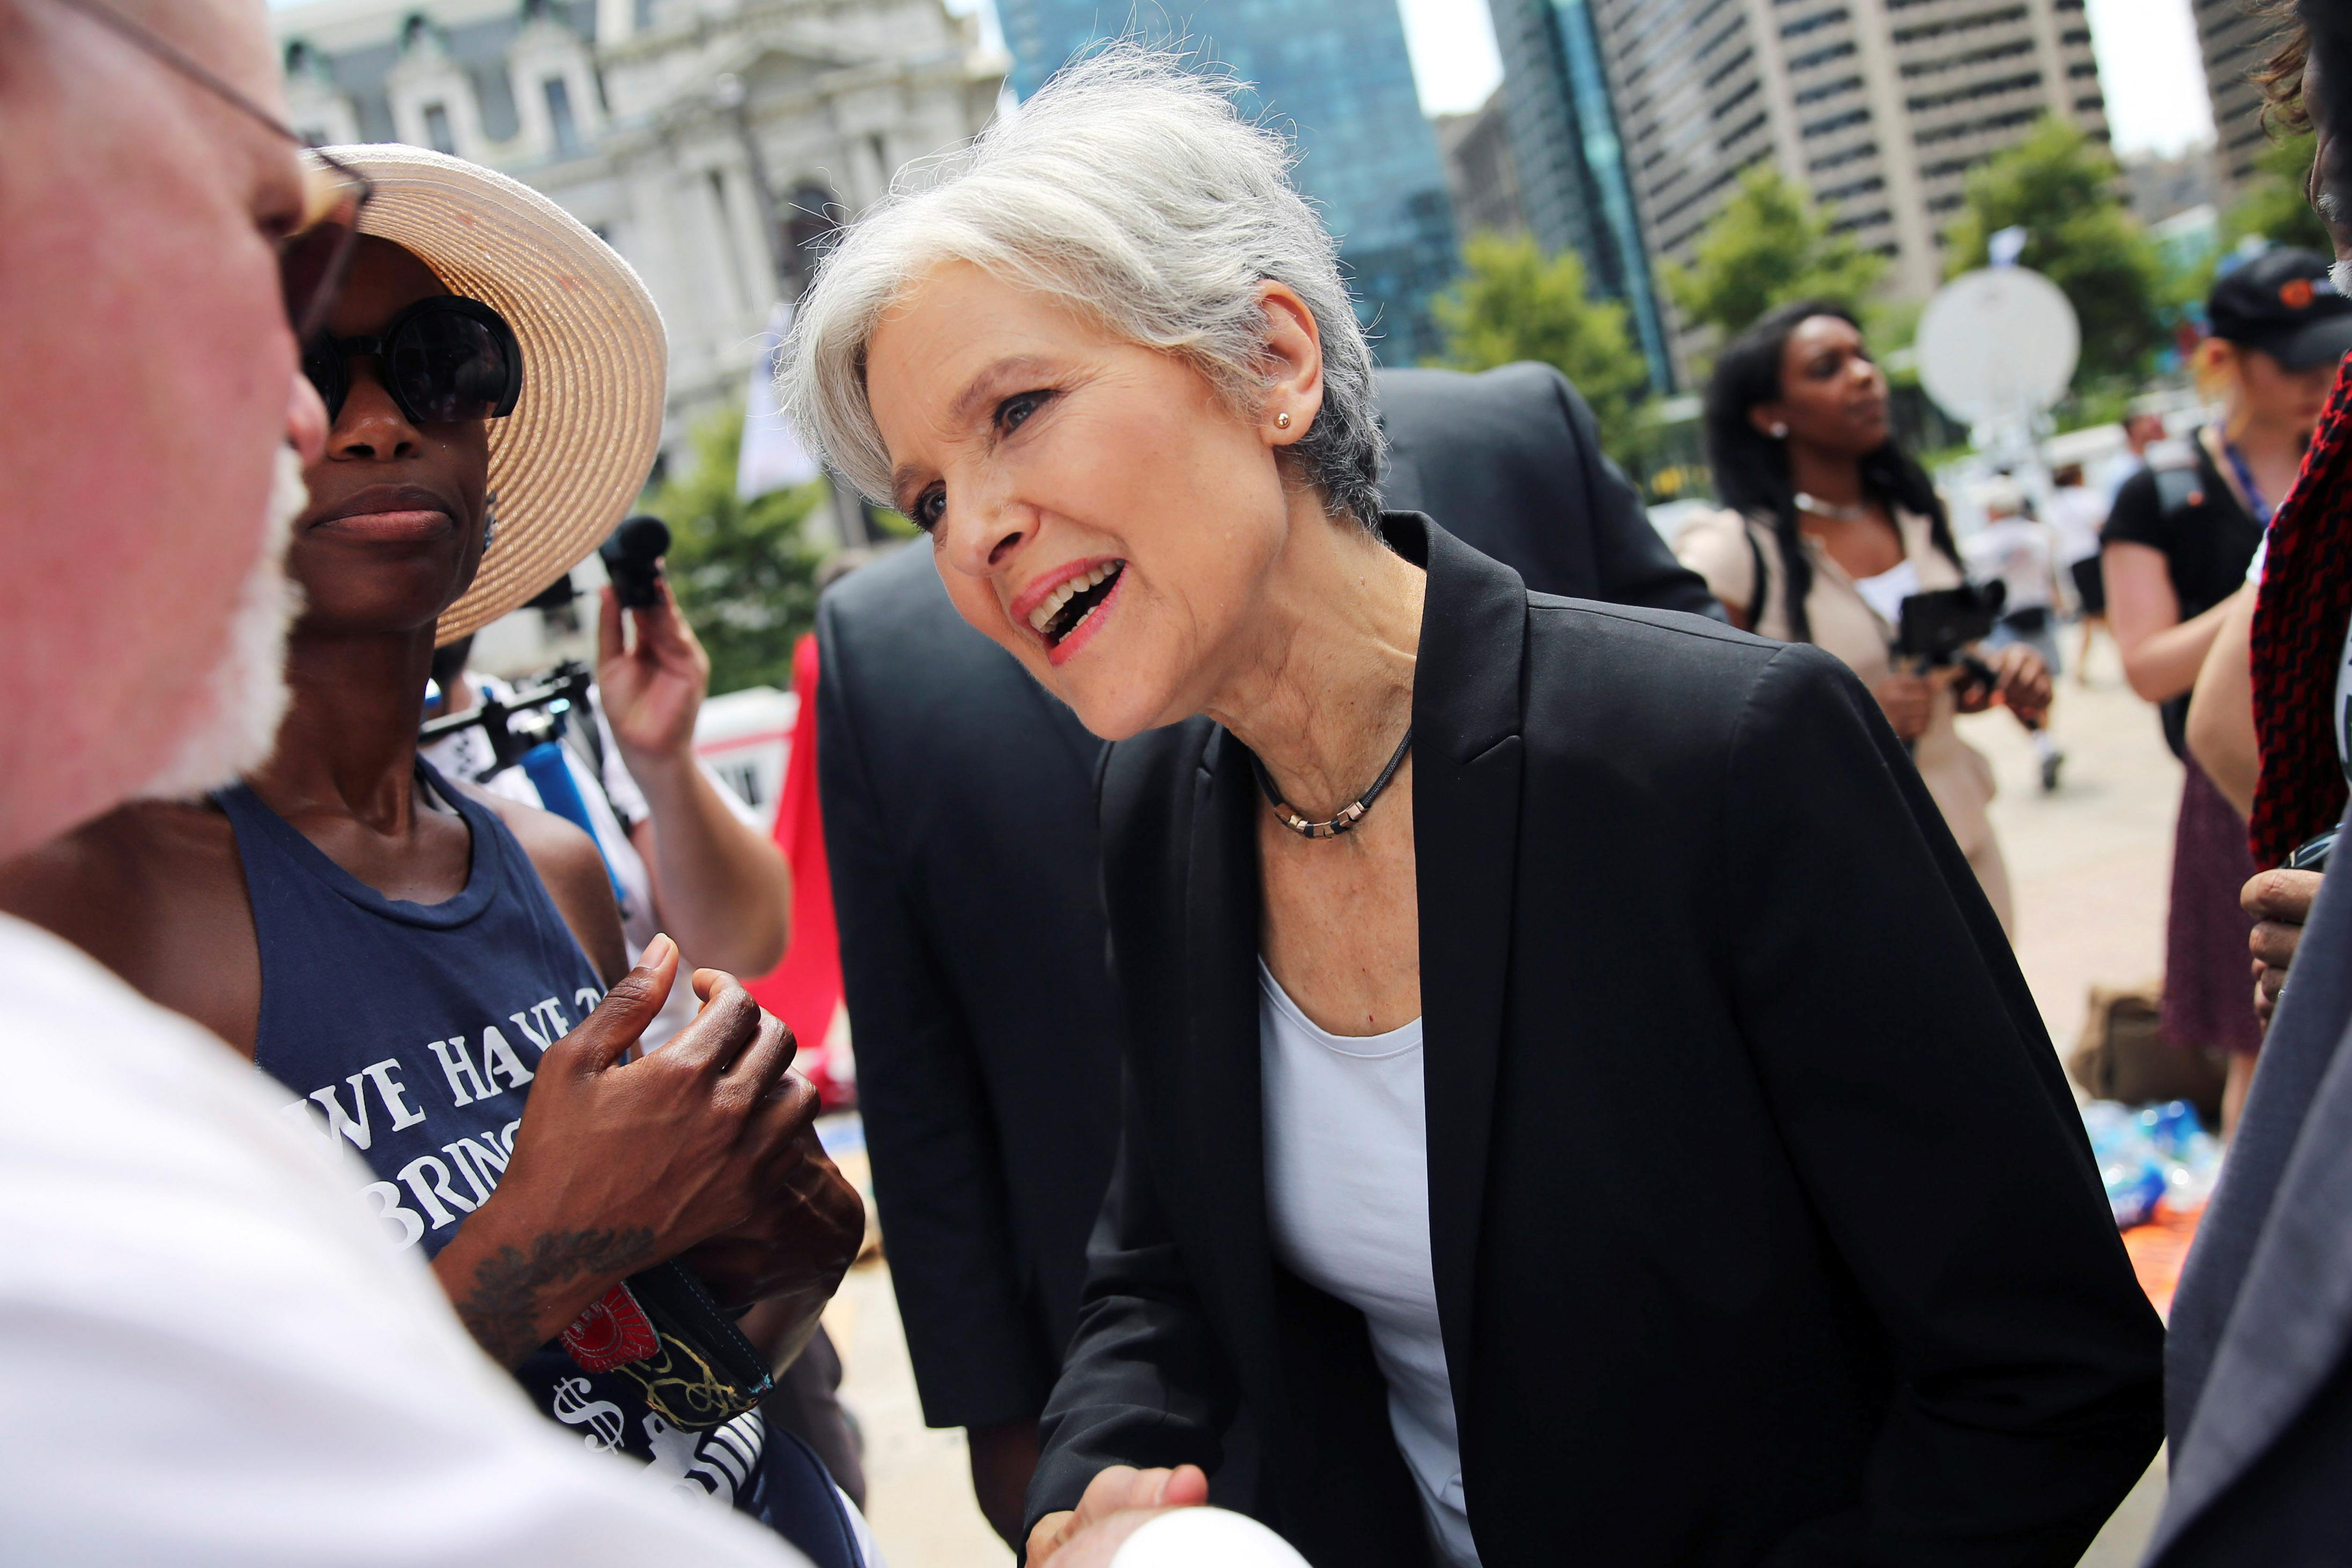 Bernie Sanders Won't Be 2020 Democratic Nominee, Jill Stein Says